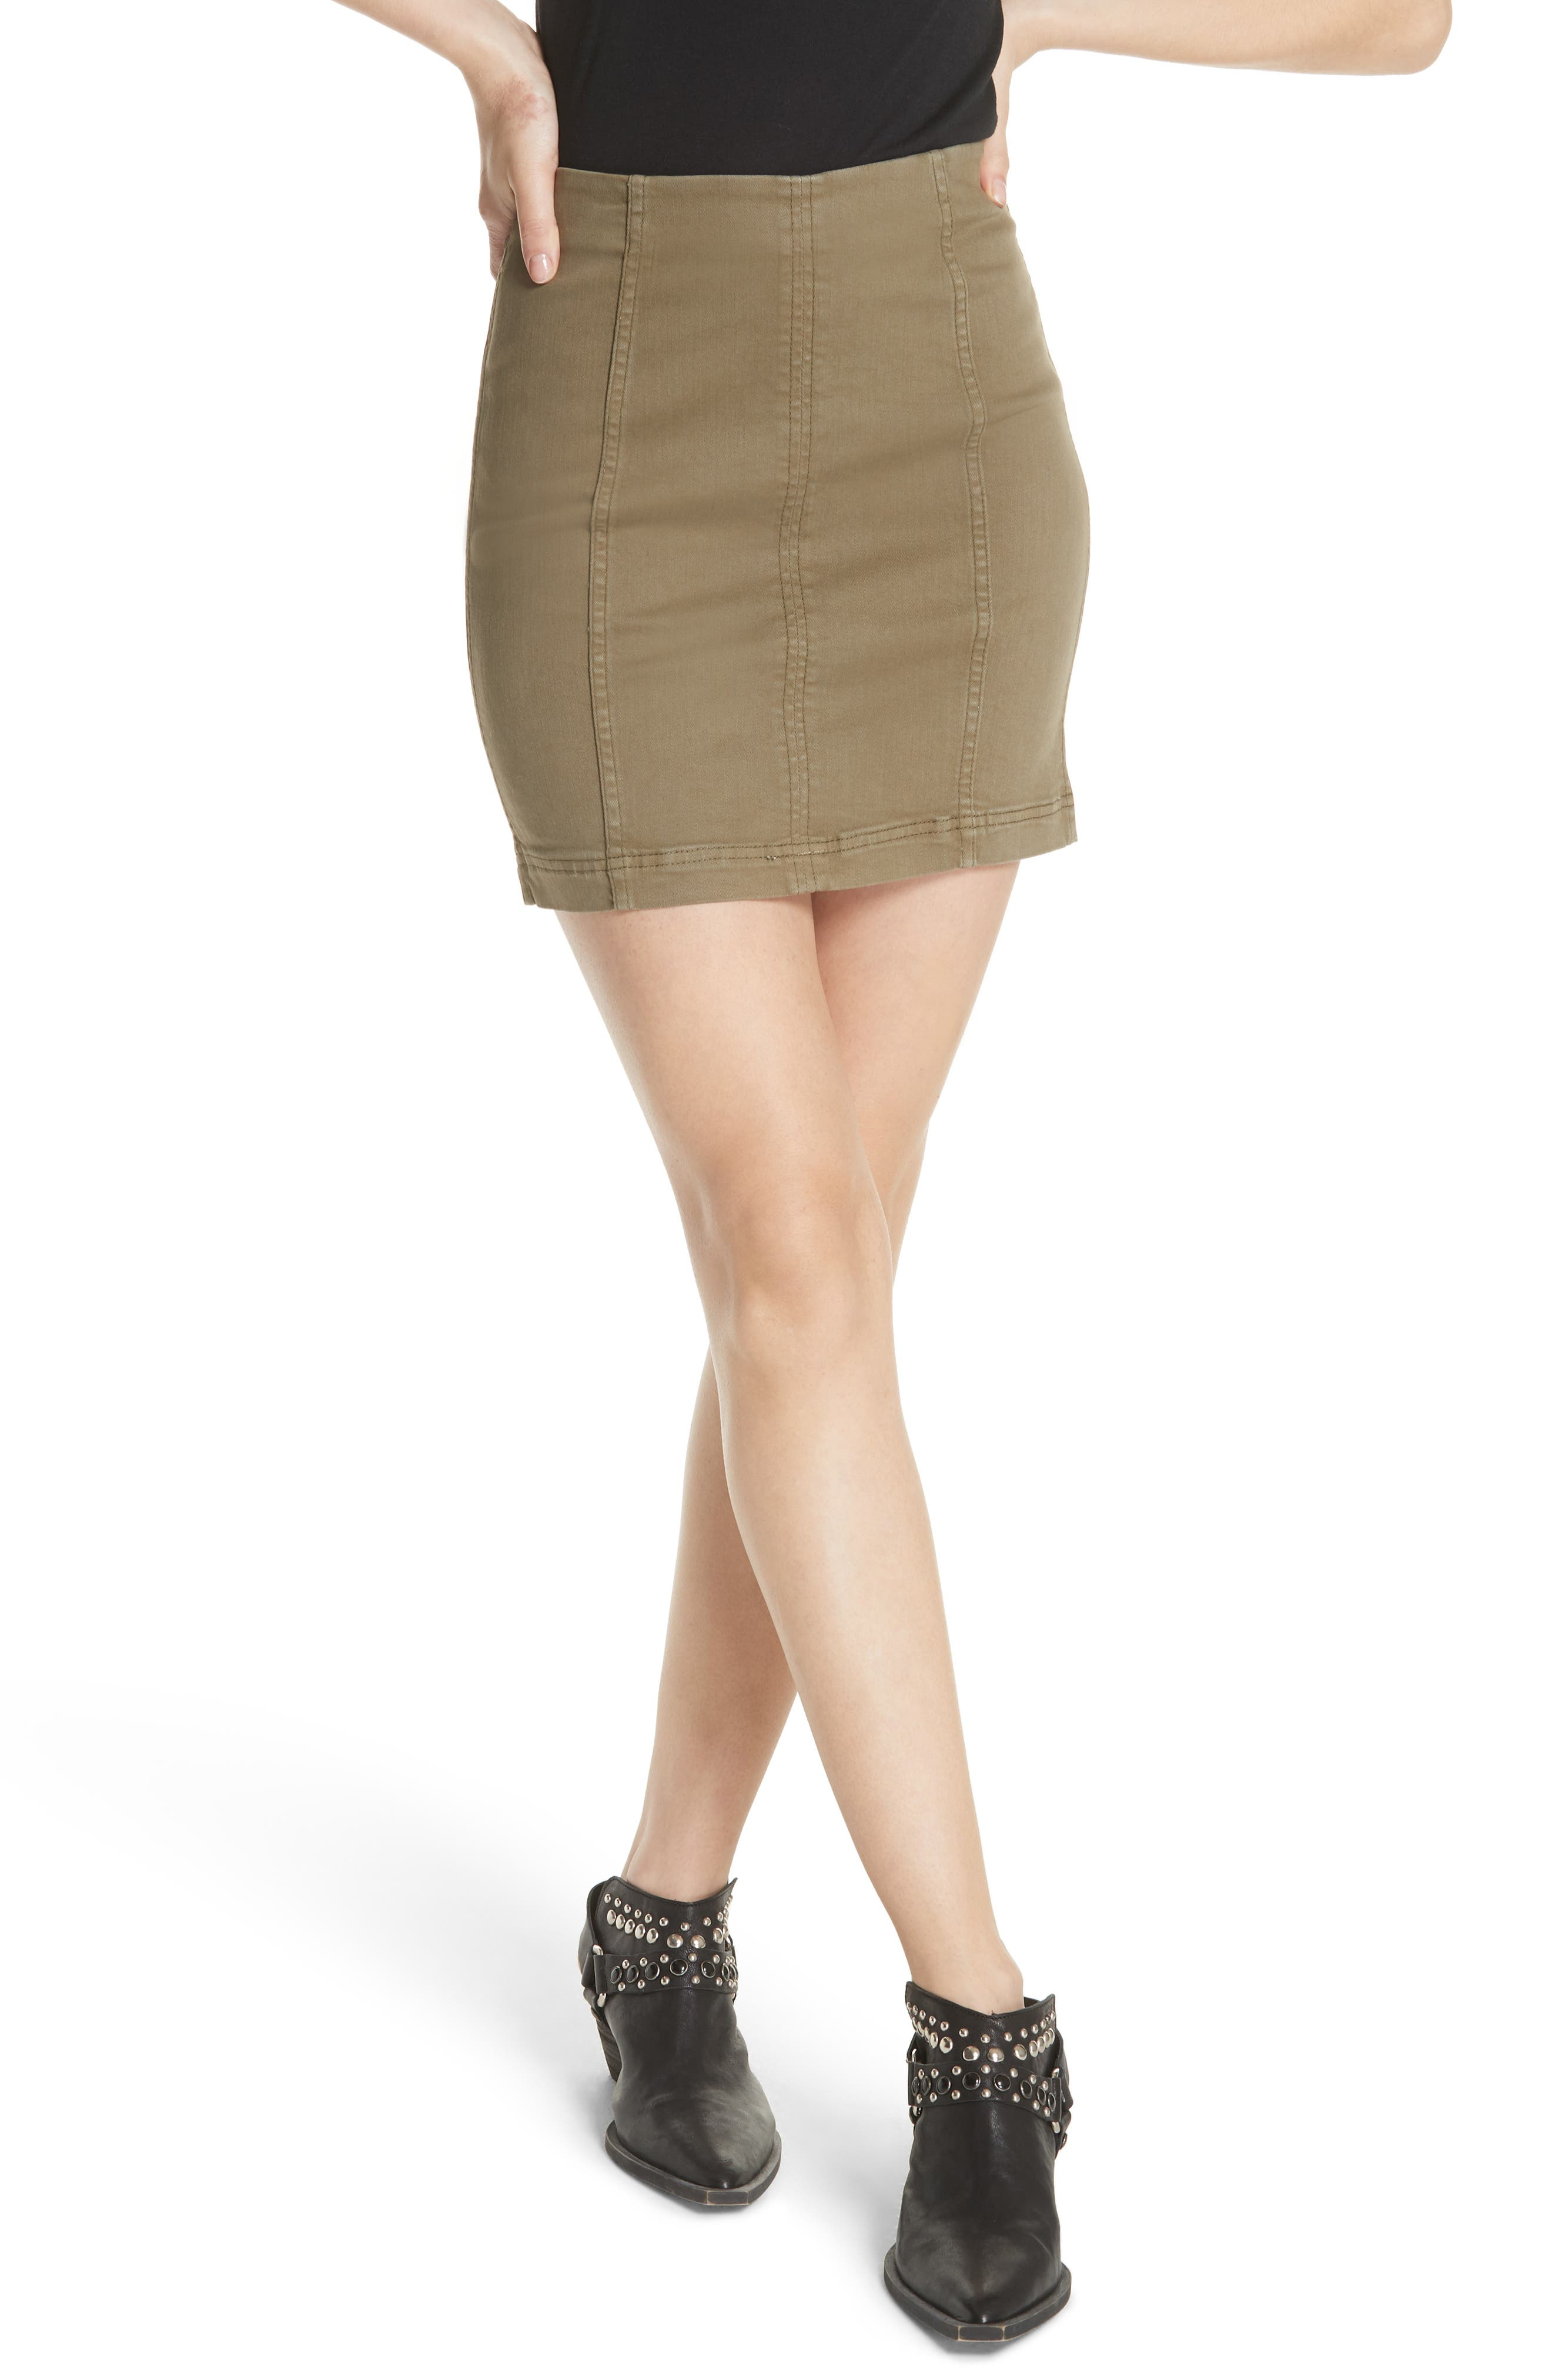 FREE PEOPLE, We the Free by Free People Modern Miniskirt, Main thumbnail 1, color, ARMY